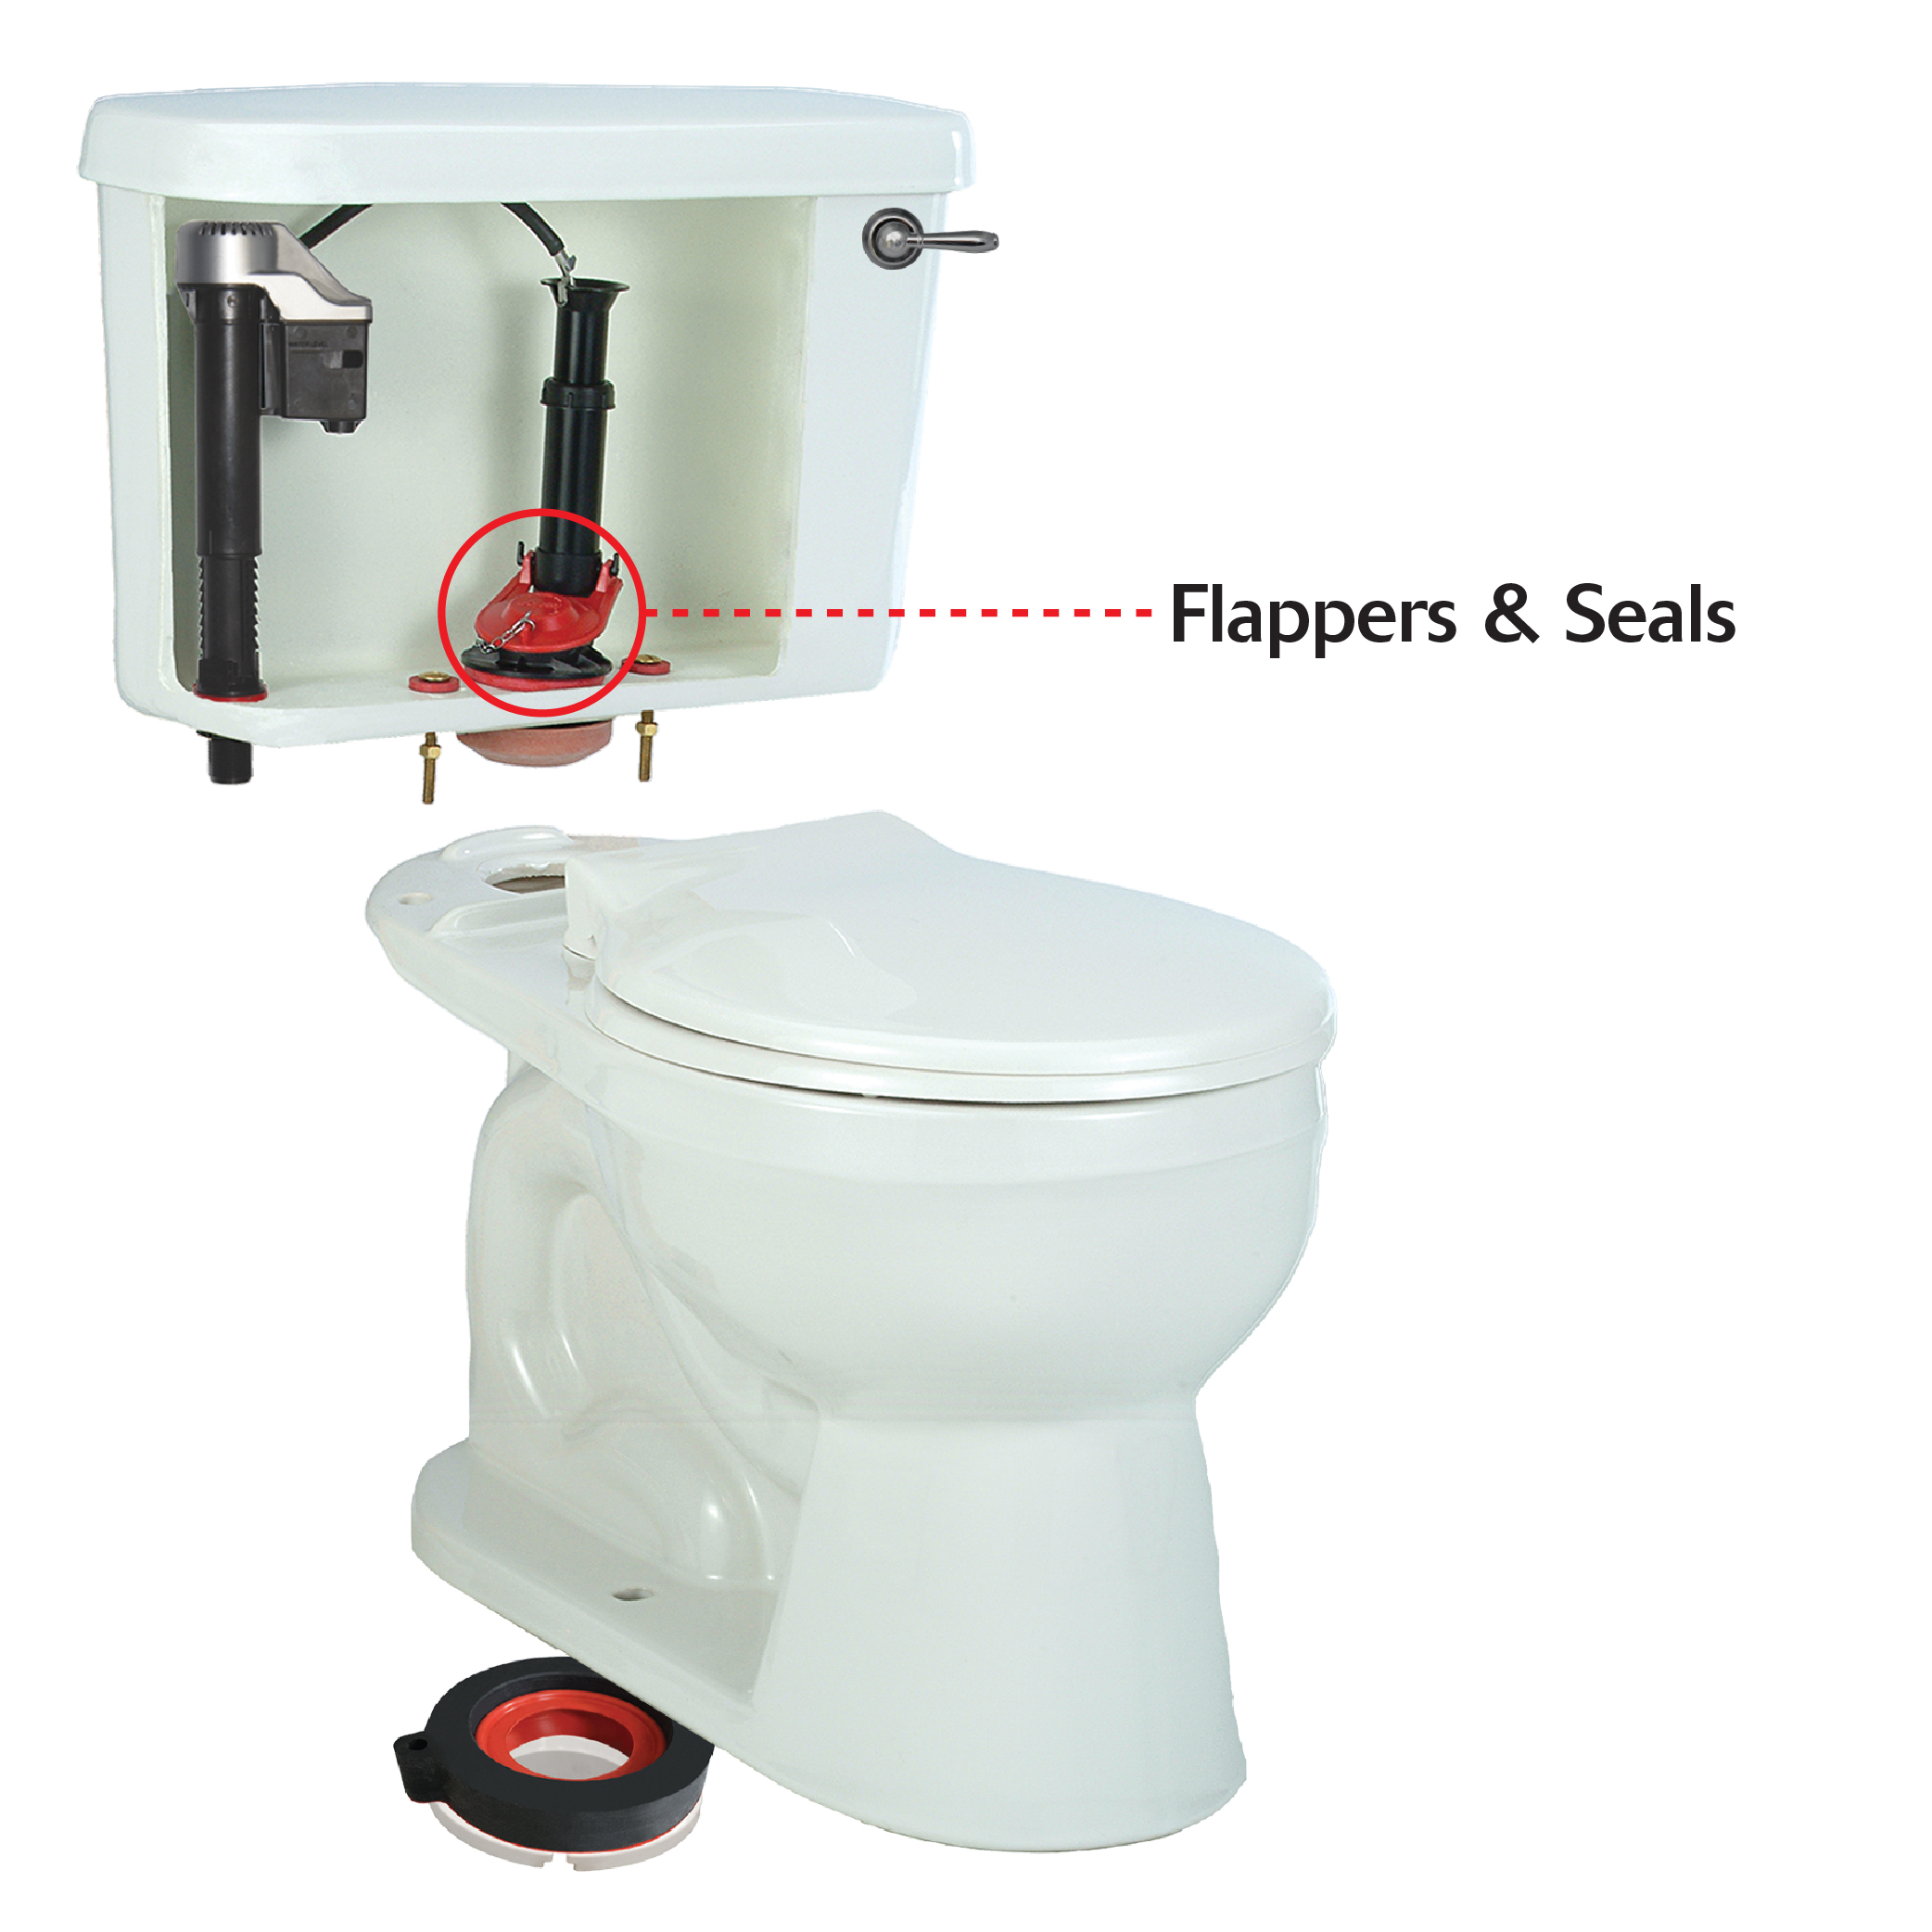 Toilet Flapper | Toilet Flapper Replacement | Replacing Toilet Seal ...